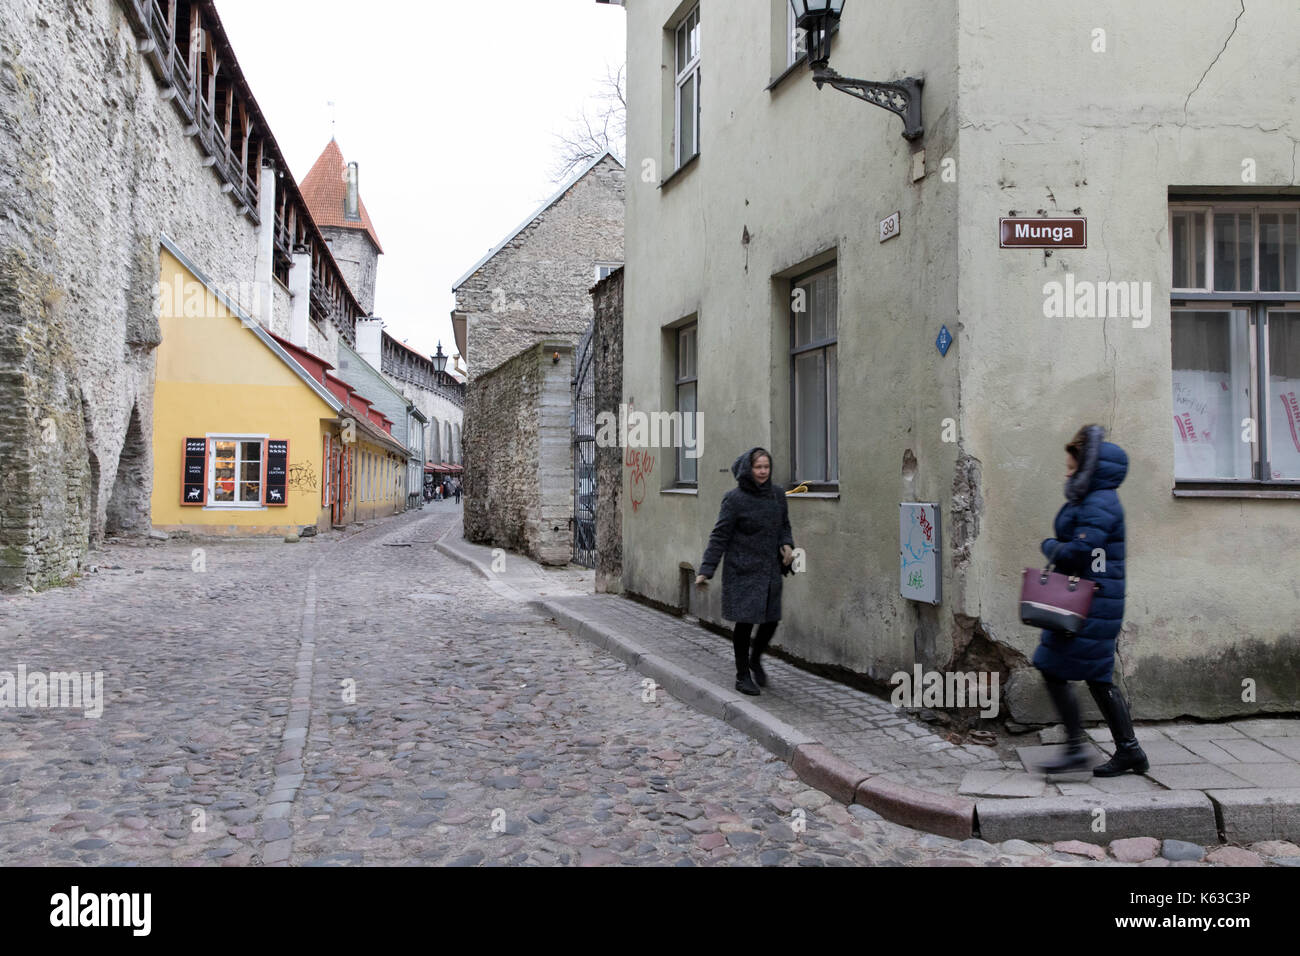 Cobbled street and city walls in the Old Town, Tallinn, Estonia, Europe - Stock Image